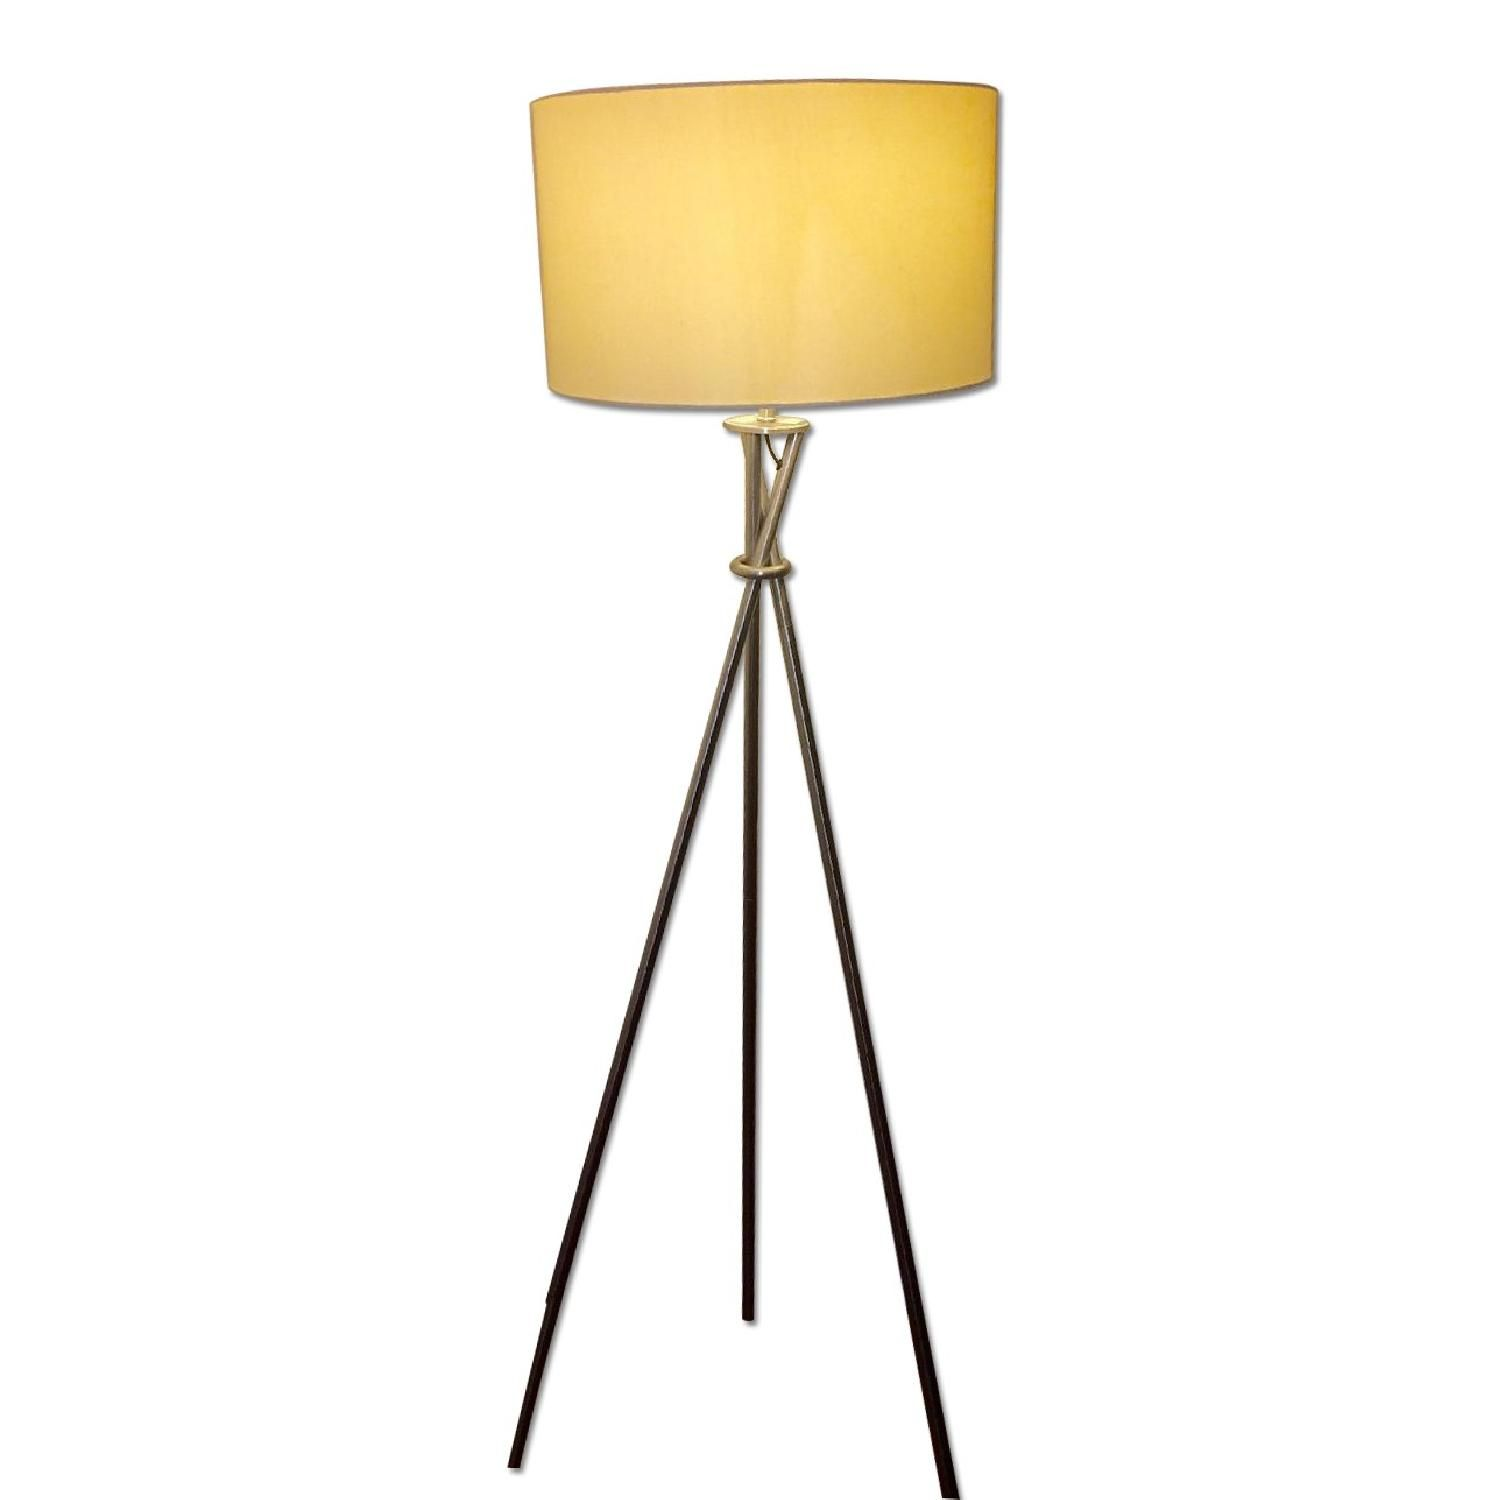 hextra tripod floor lamp brushed nickel decorate accent spotlight table west elm industrial metal bedside adjustable height end round oak dining faux fur throw target long trestle